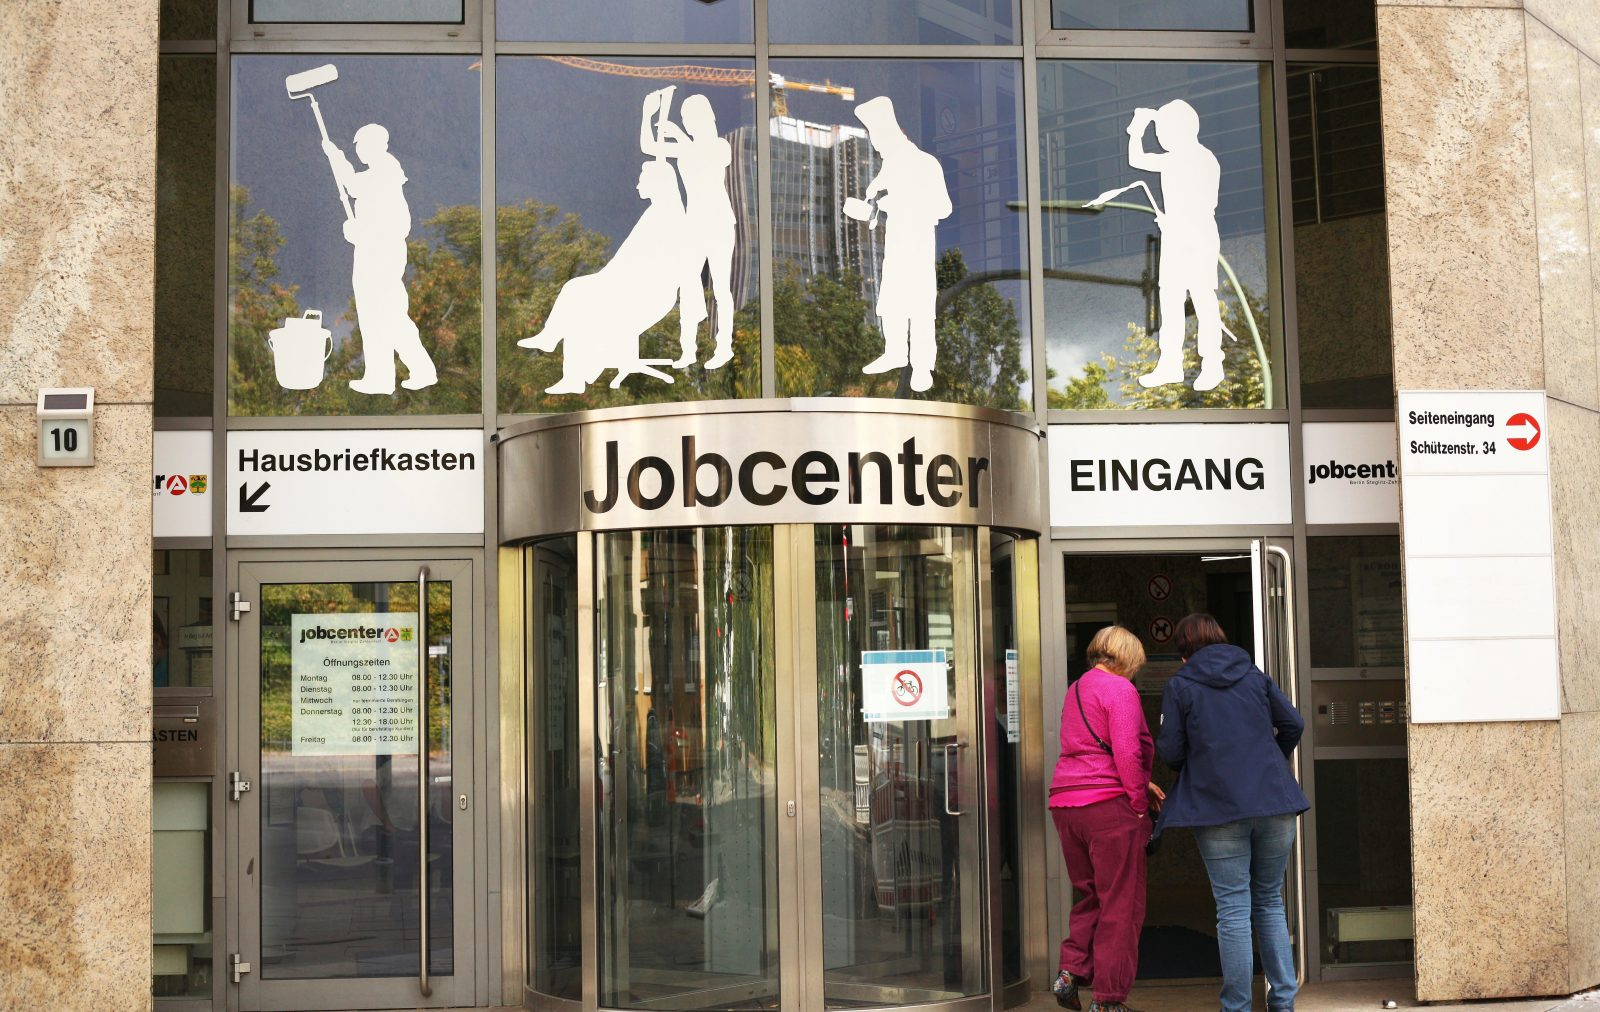 Jobcenter in Berlin